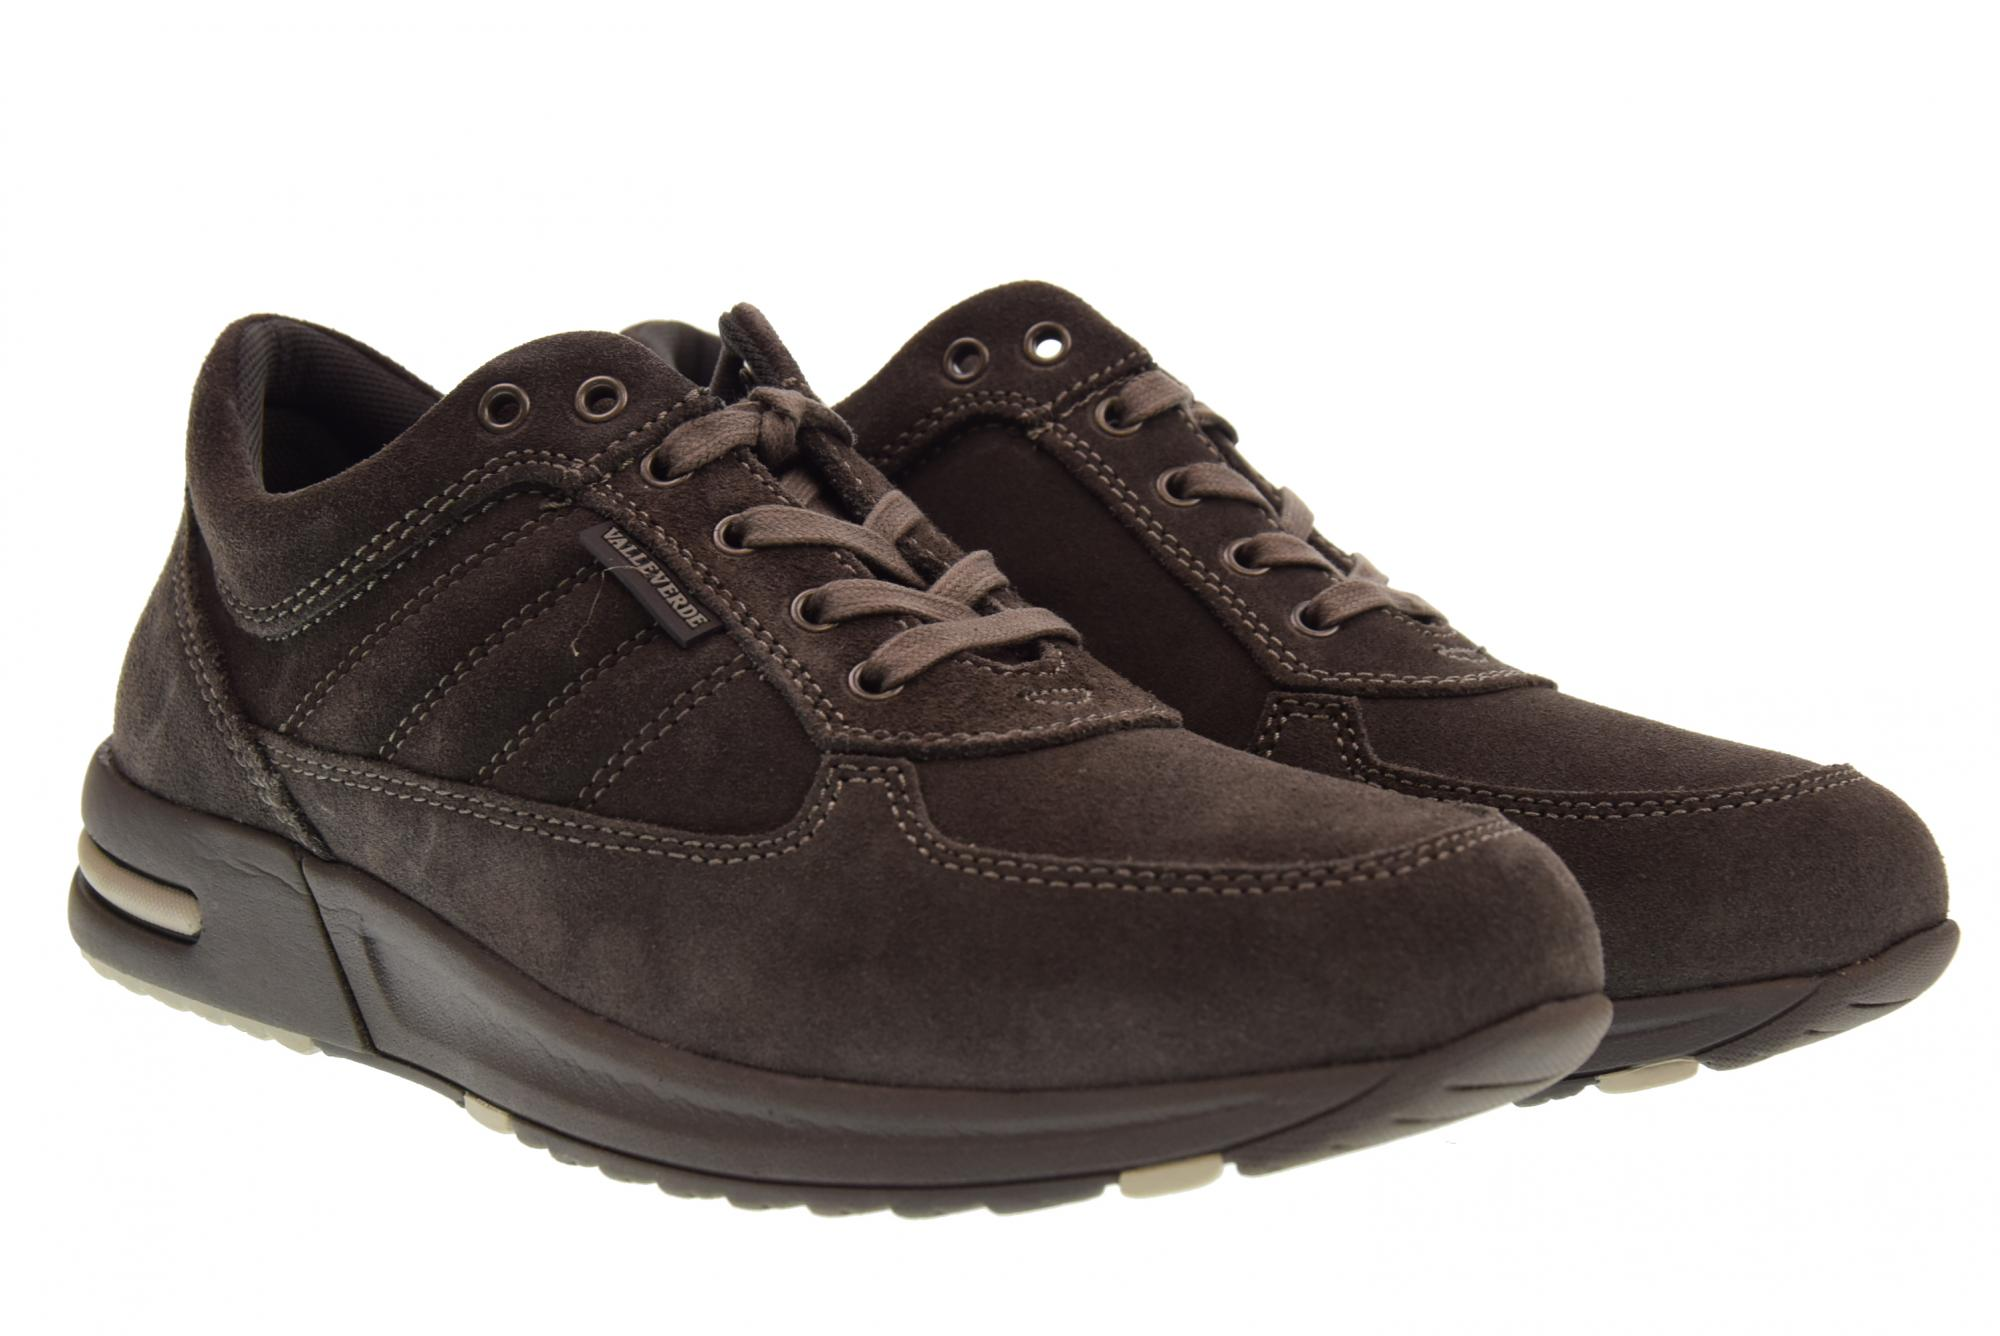 Valleverde A18f chaussures homme snaekers basse 17821 ANTRACITE